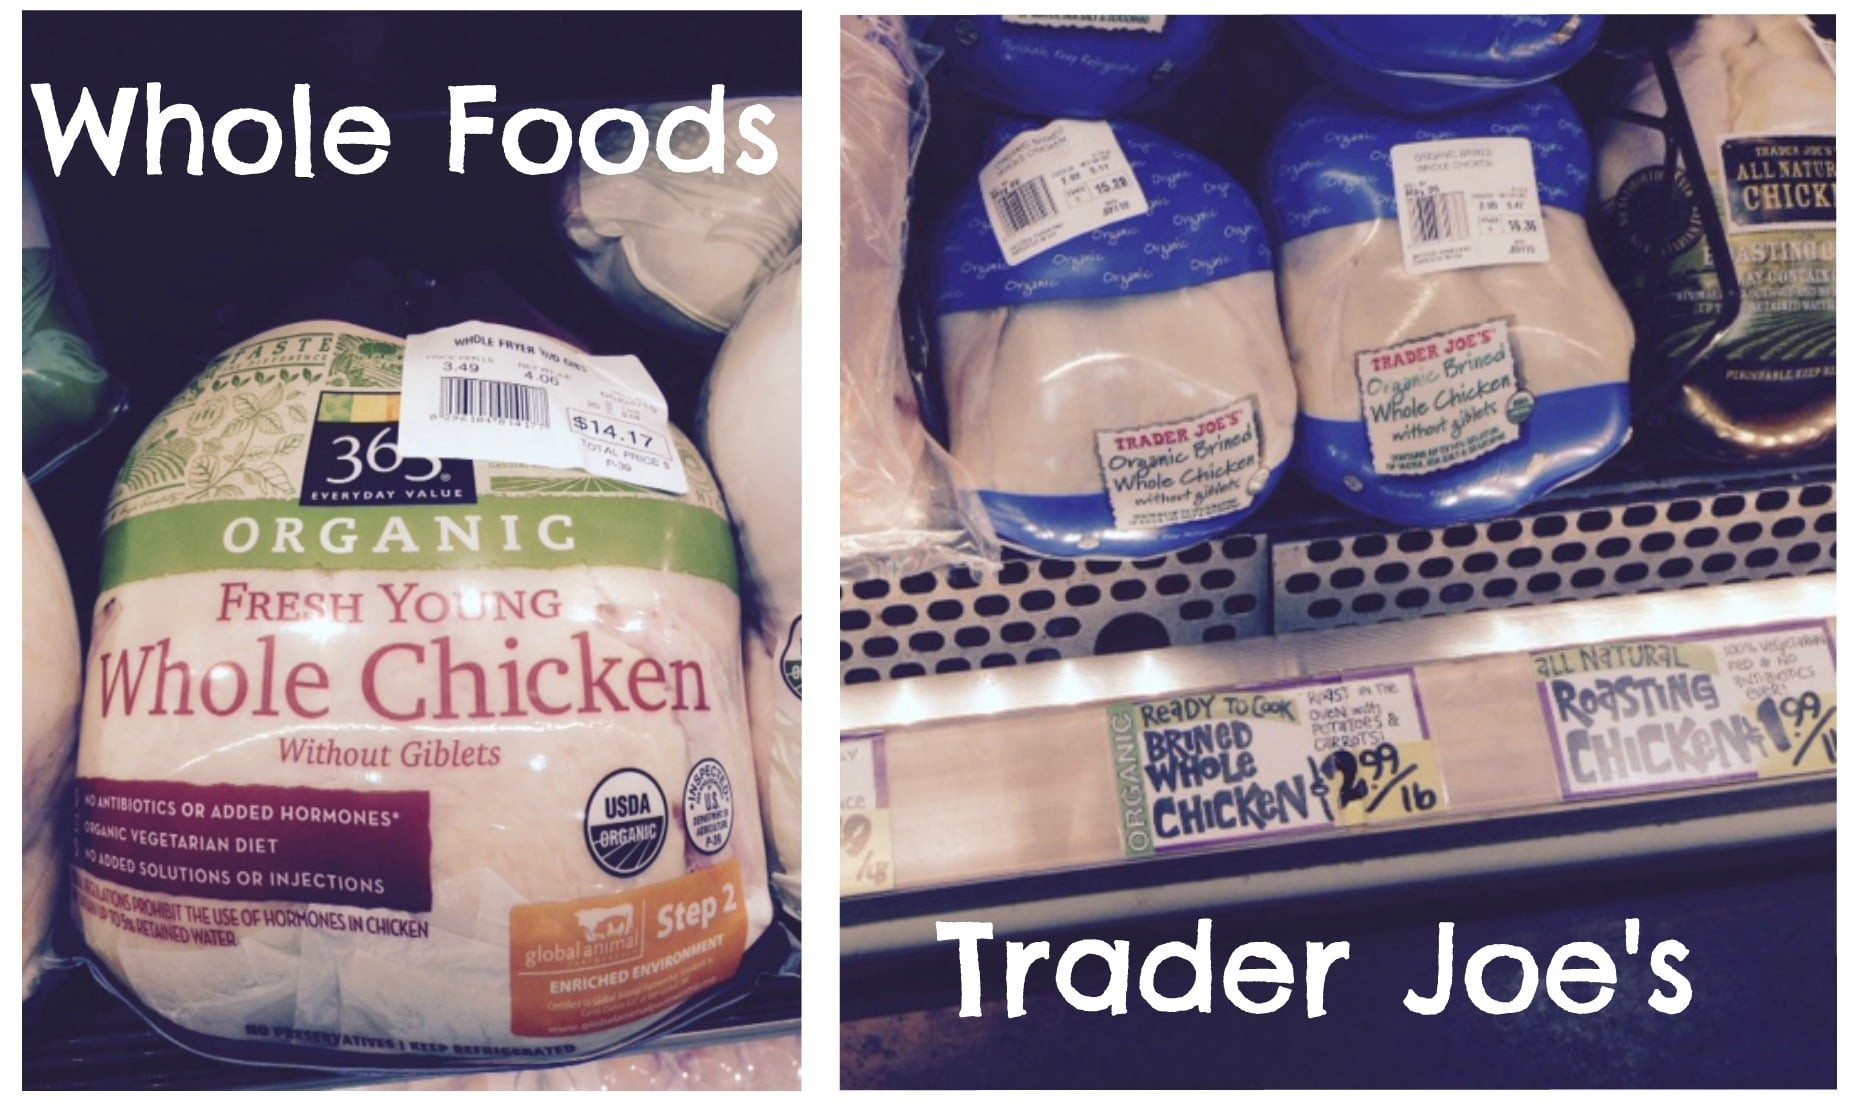 Whole Foods Chicken  Whole Foods Vs Trader Joe's Food Price parison – All